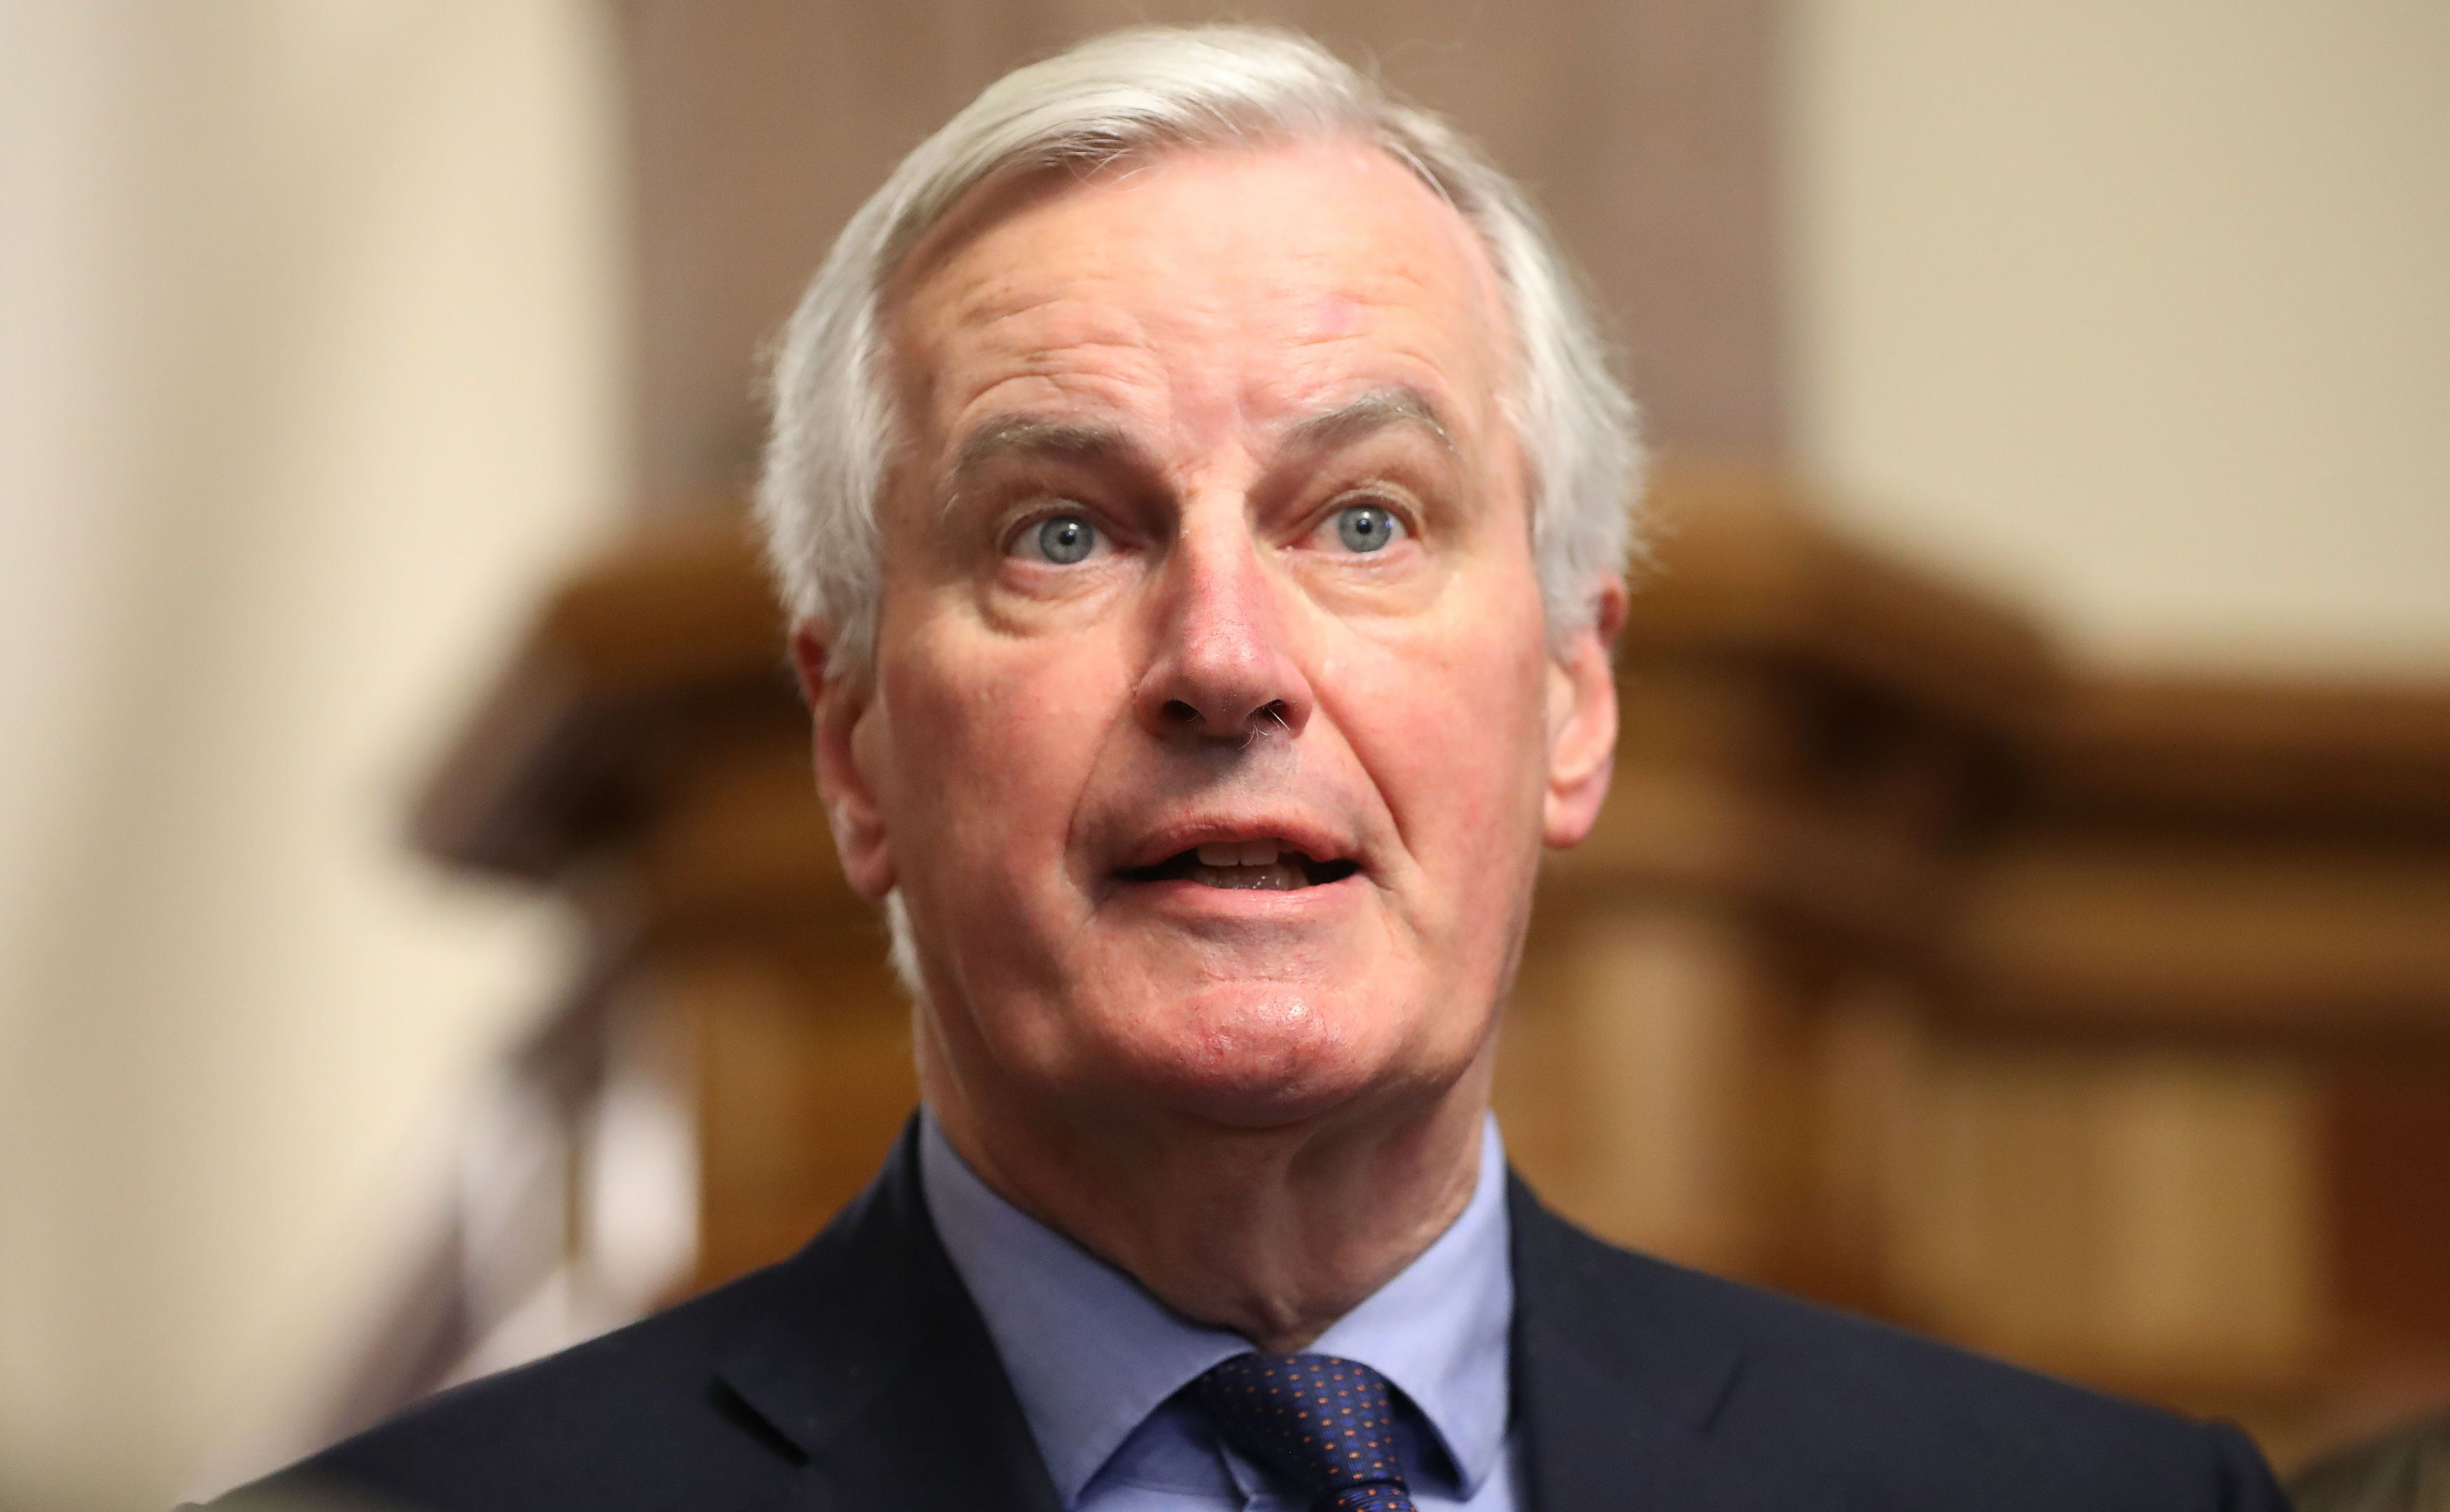 EU To Offer Compromise On Irish Border, Chief Negotiator Michel Barnier